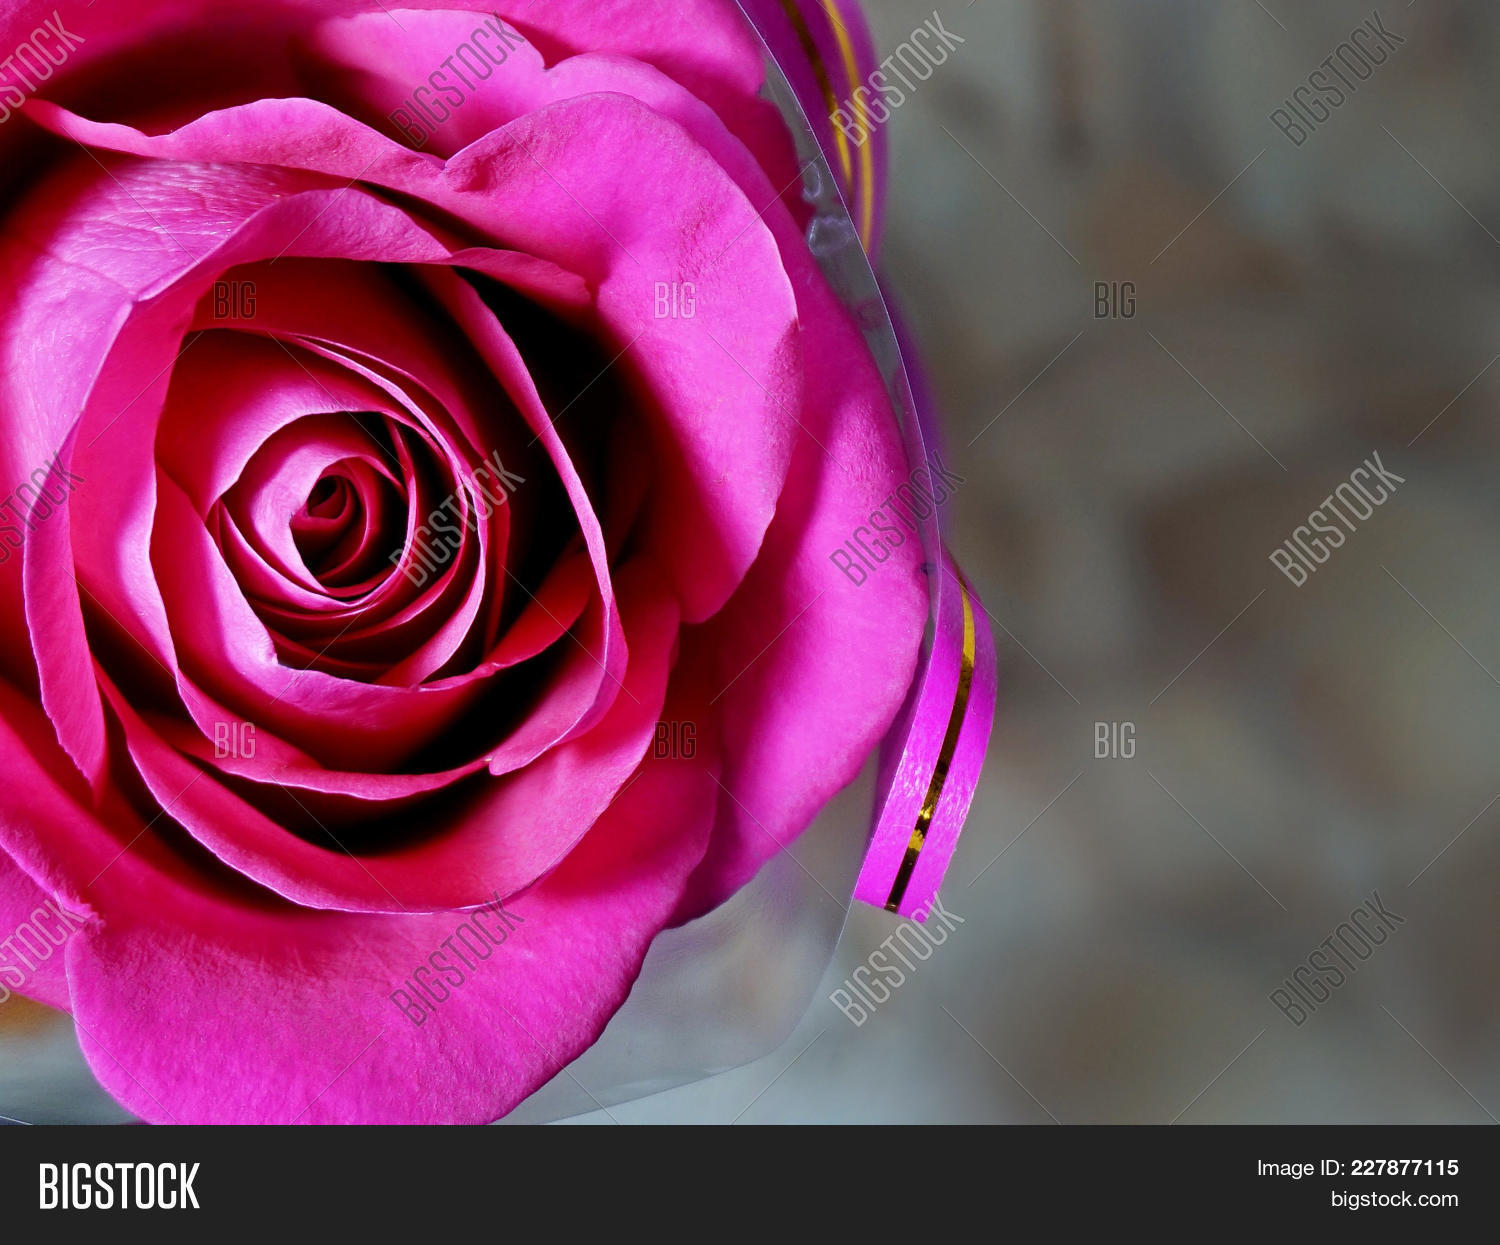 Flowers. Rose Flower Image & Photo (Free Trial) | Bigstock